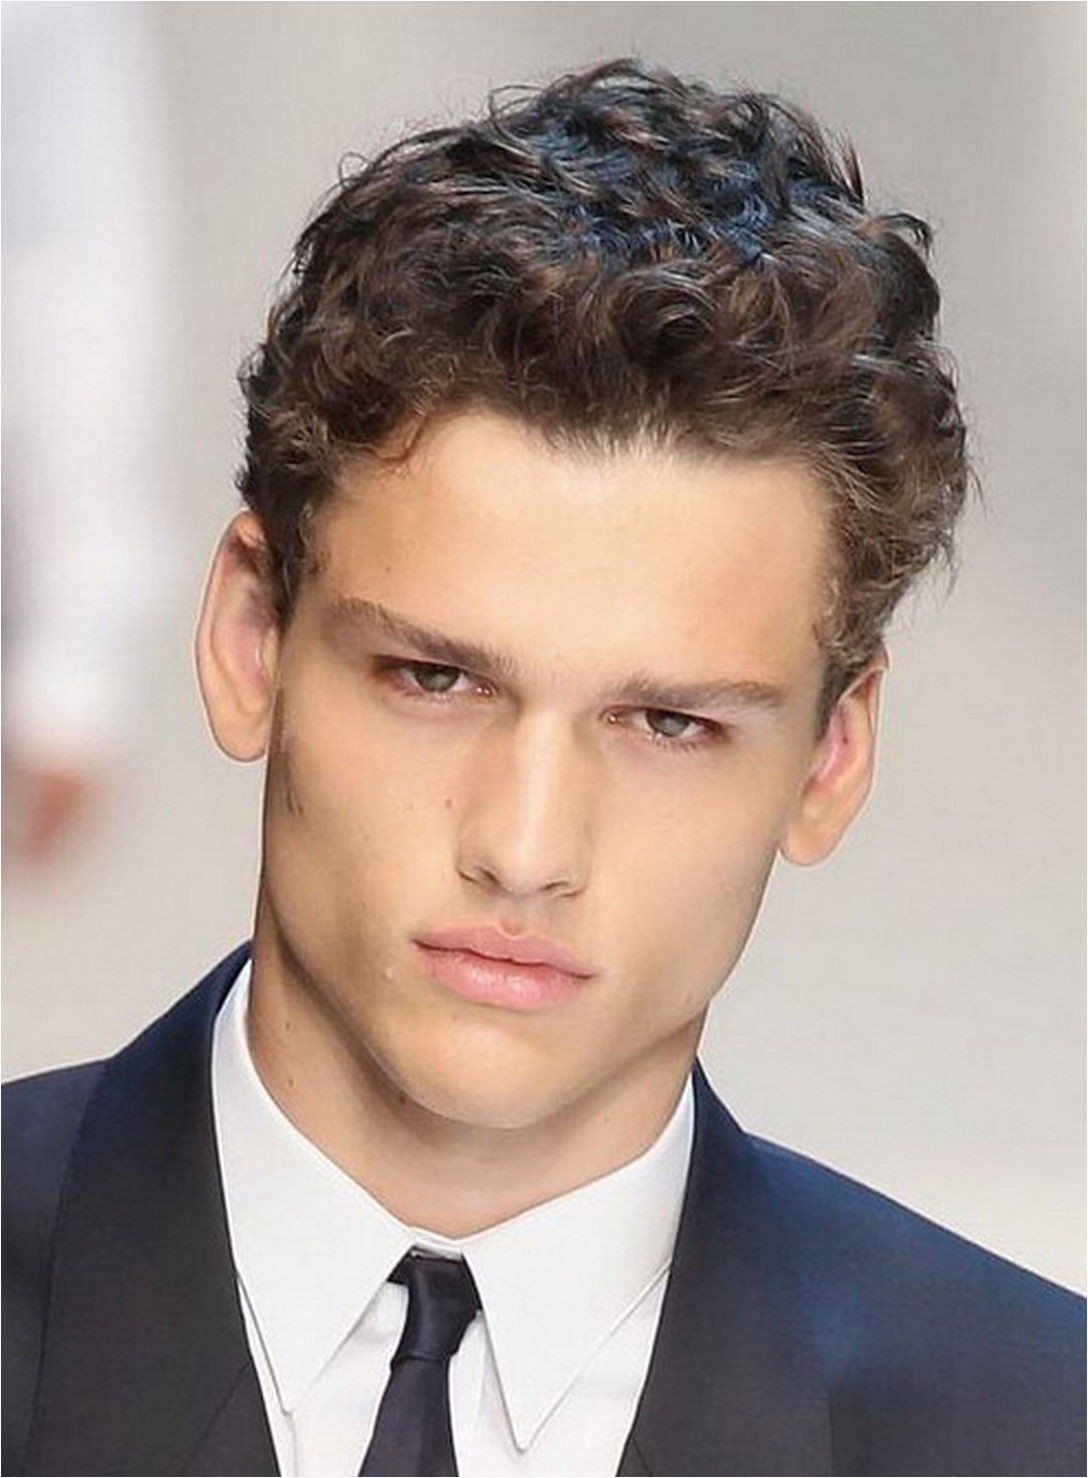 Relaxed Hair Trend Around Best Mens Hairstyles For Thick Curly Hair Gallery Styles Ideas